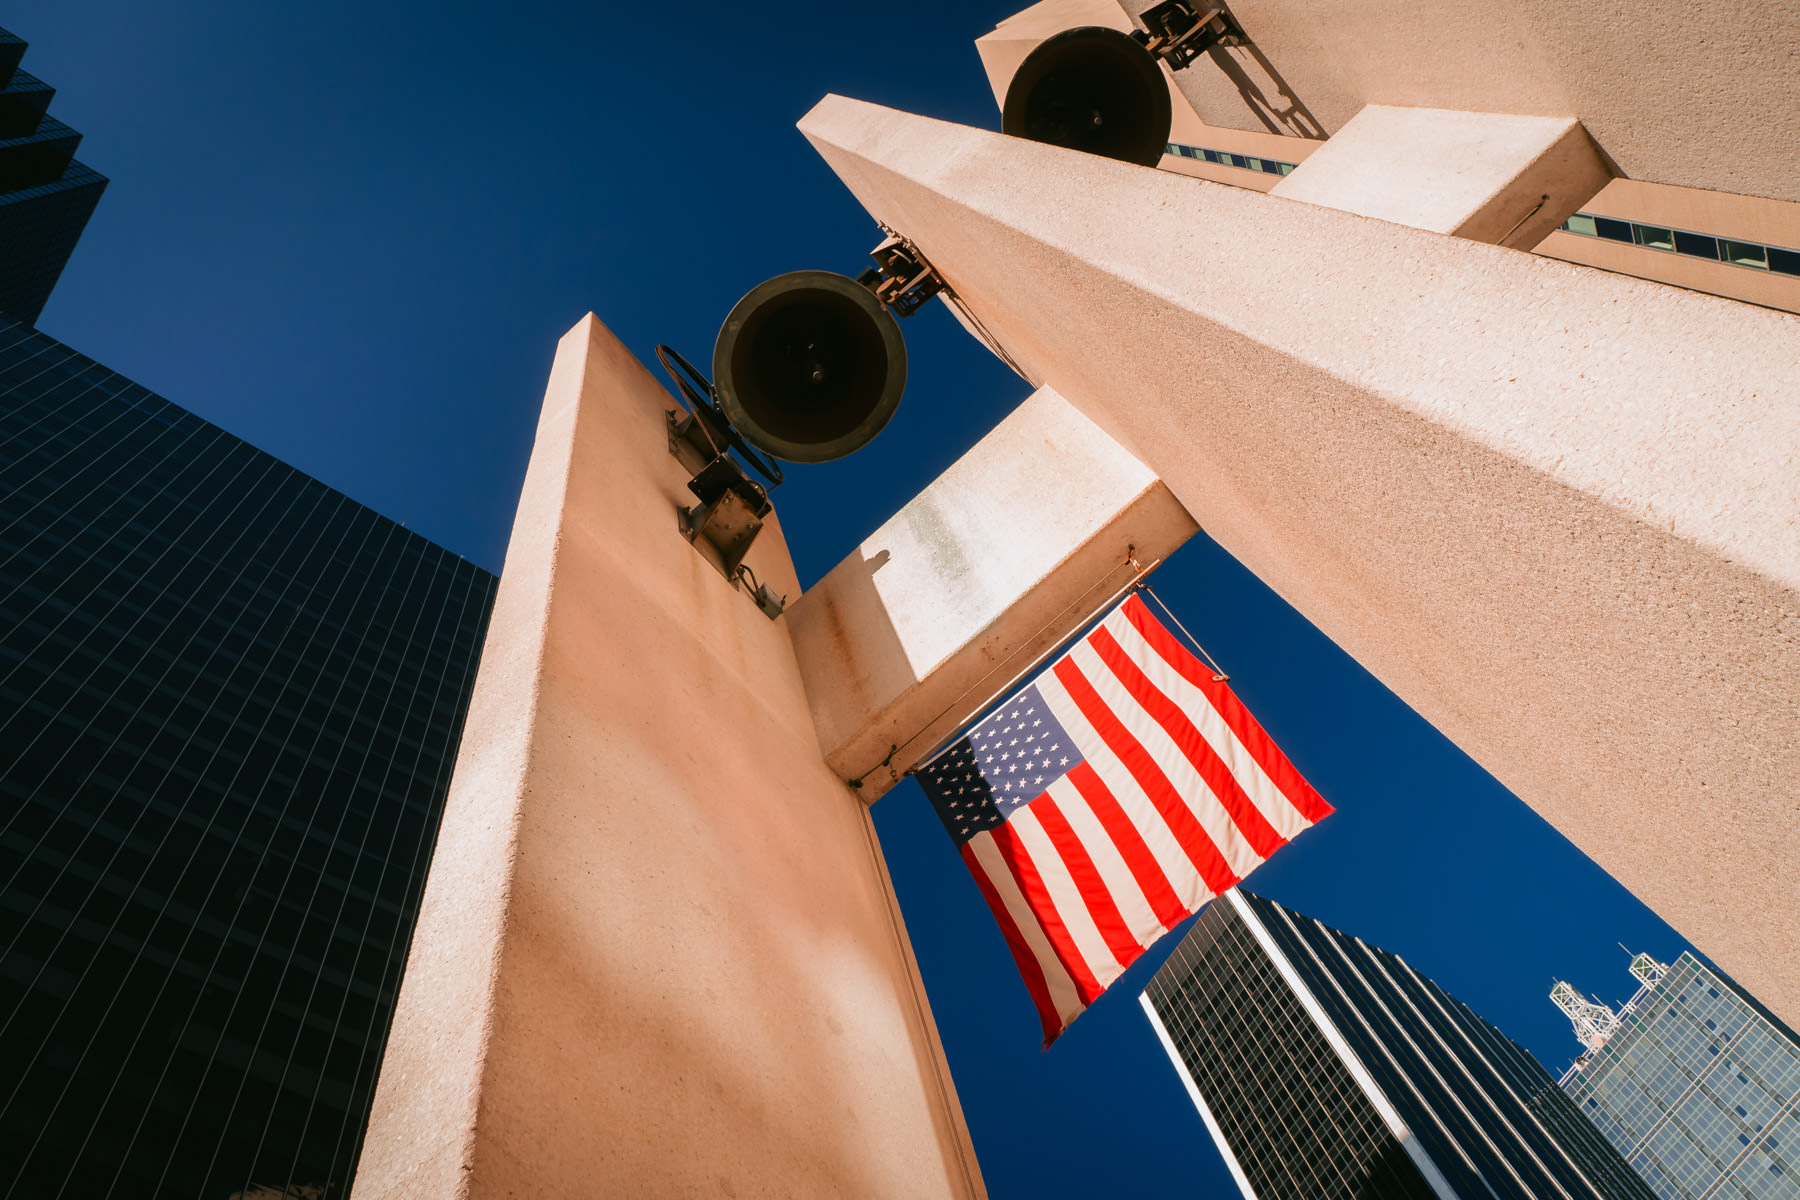 An American flag hangs among the skyscrapers of Downtown Dallas at Thanks-Giving Square.